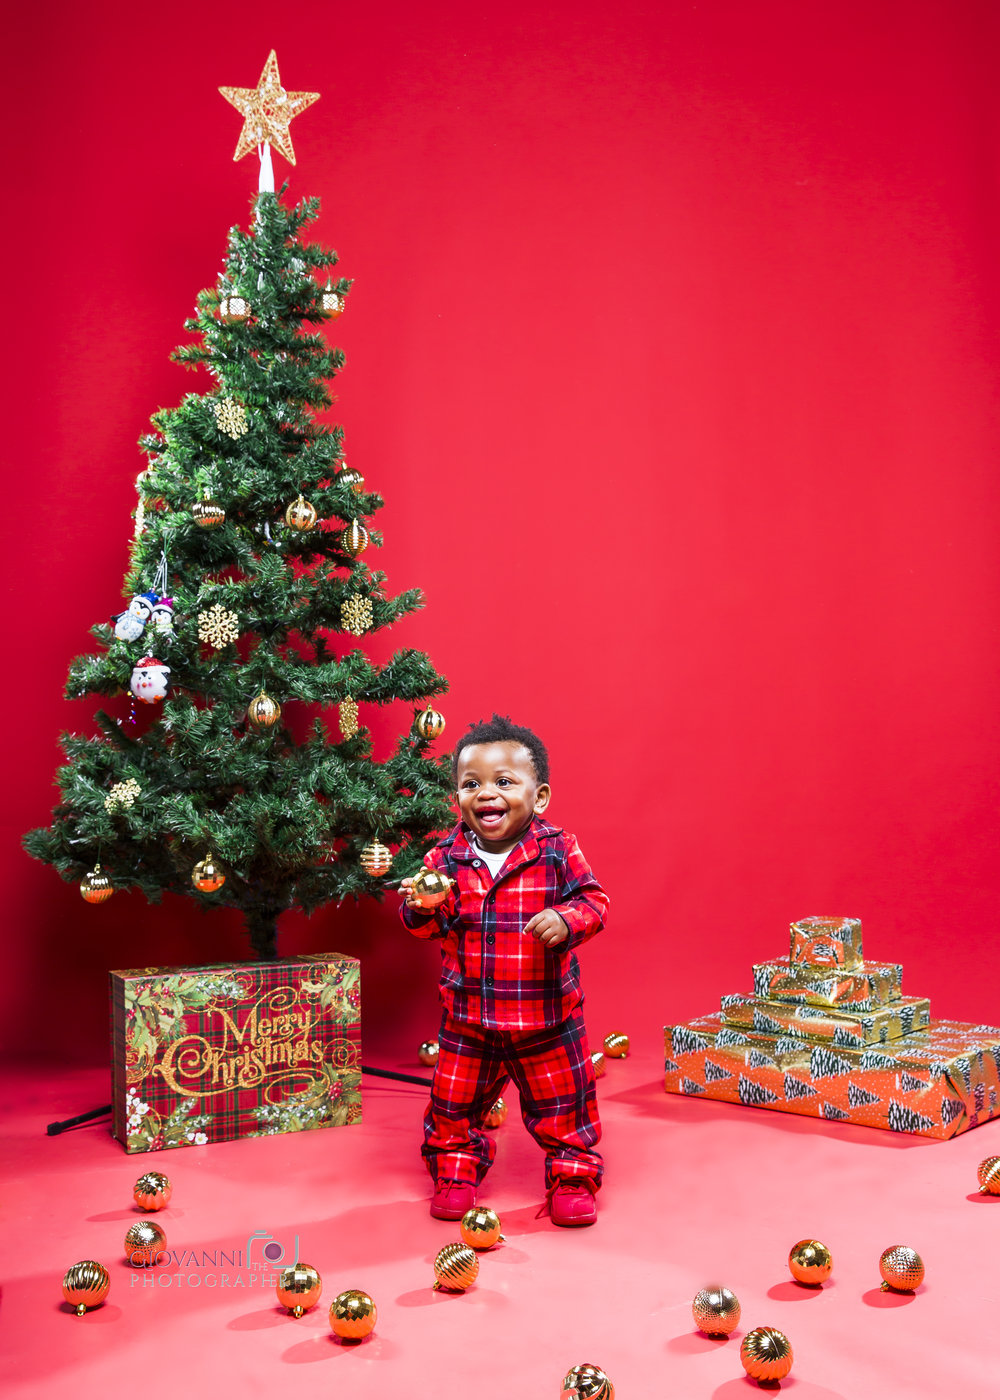 314A9804-12-16-18 - Sie - Chavin - Cannon - Christmas Photo Shoot - Boston Sudio Rental.jpg